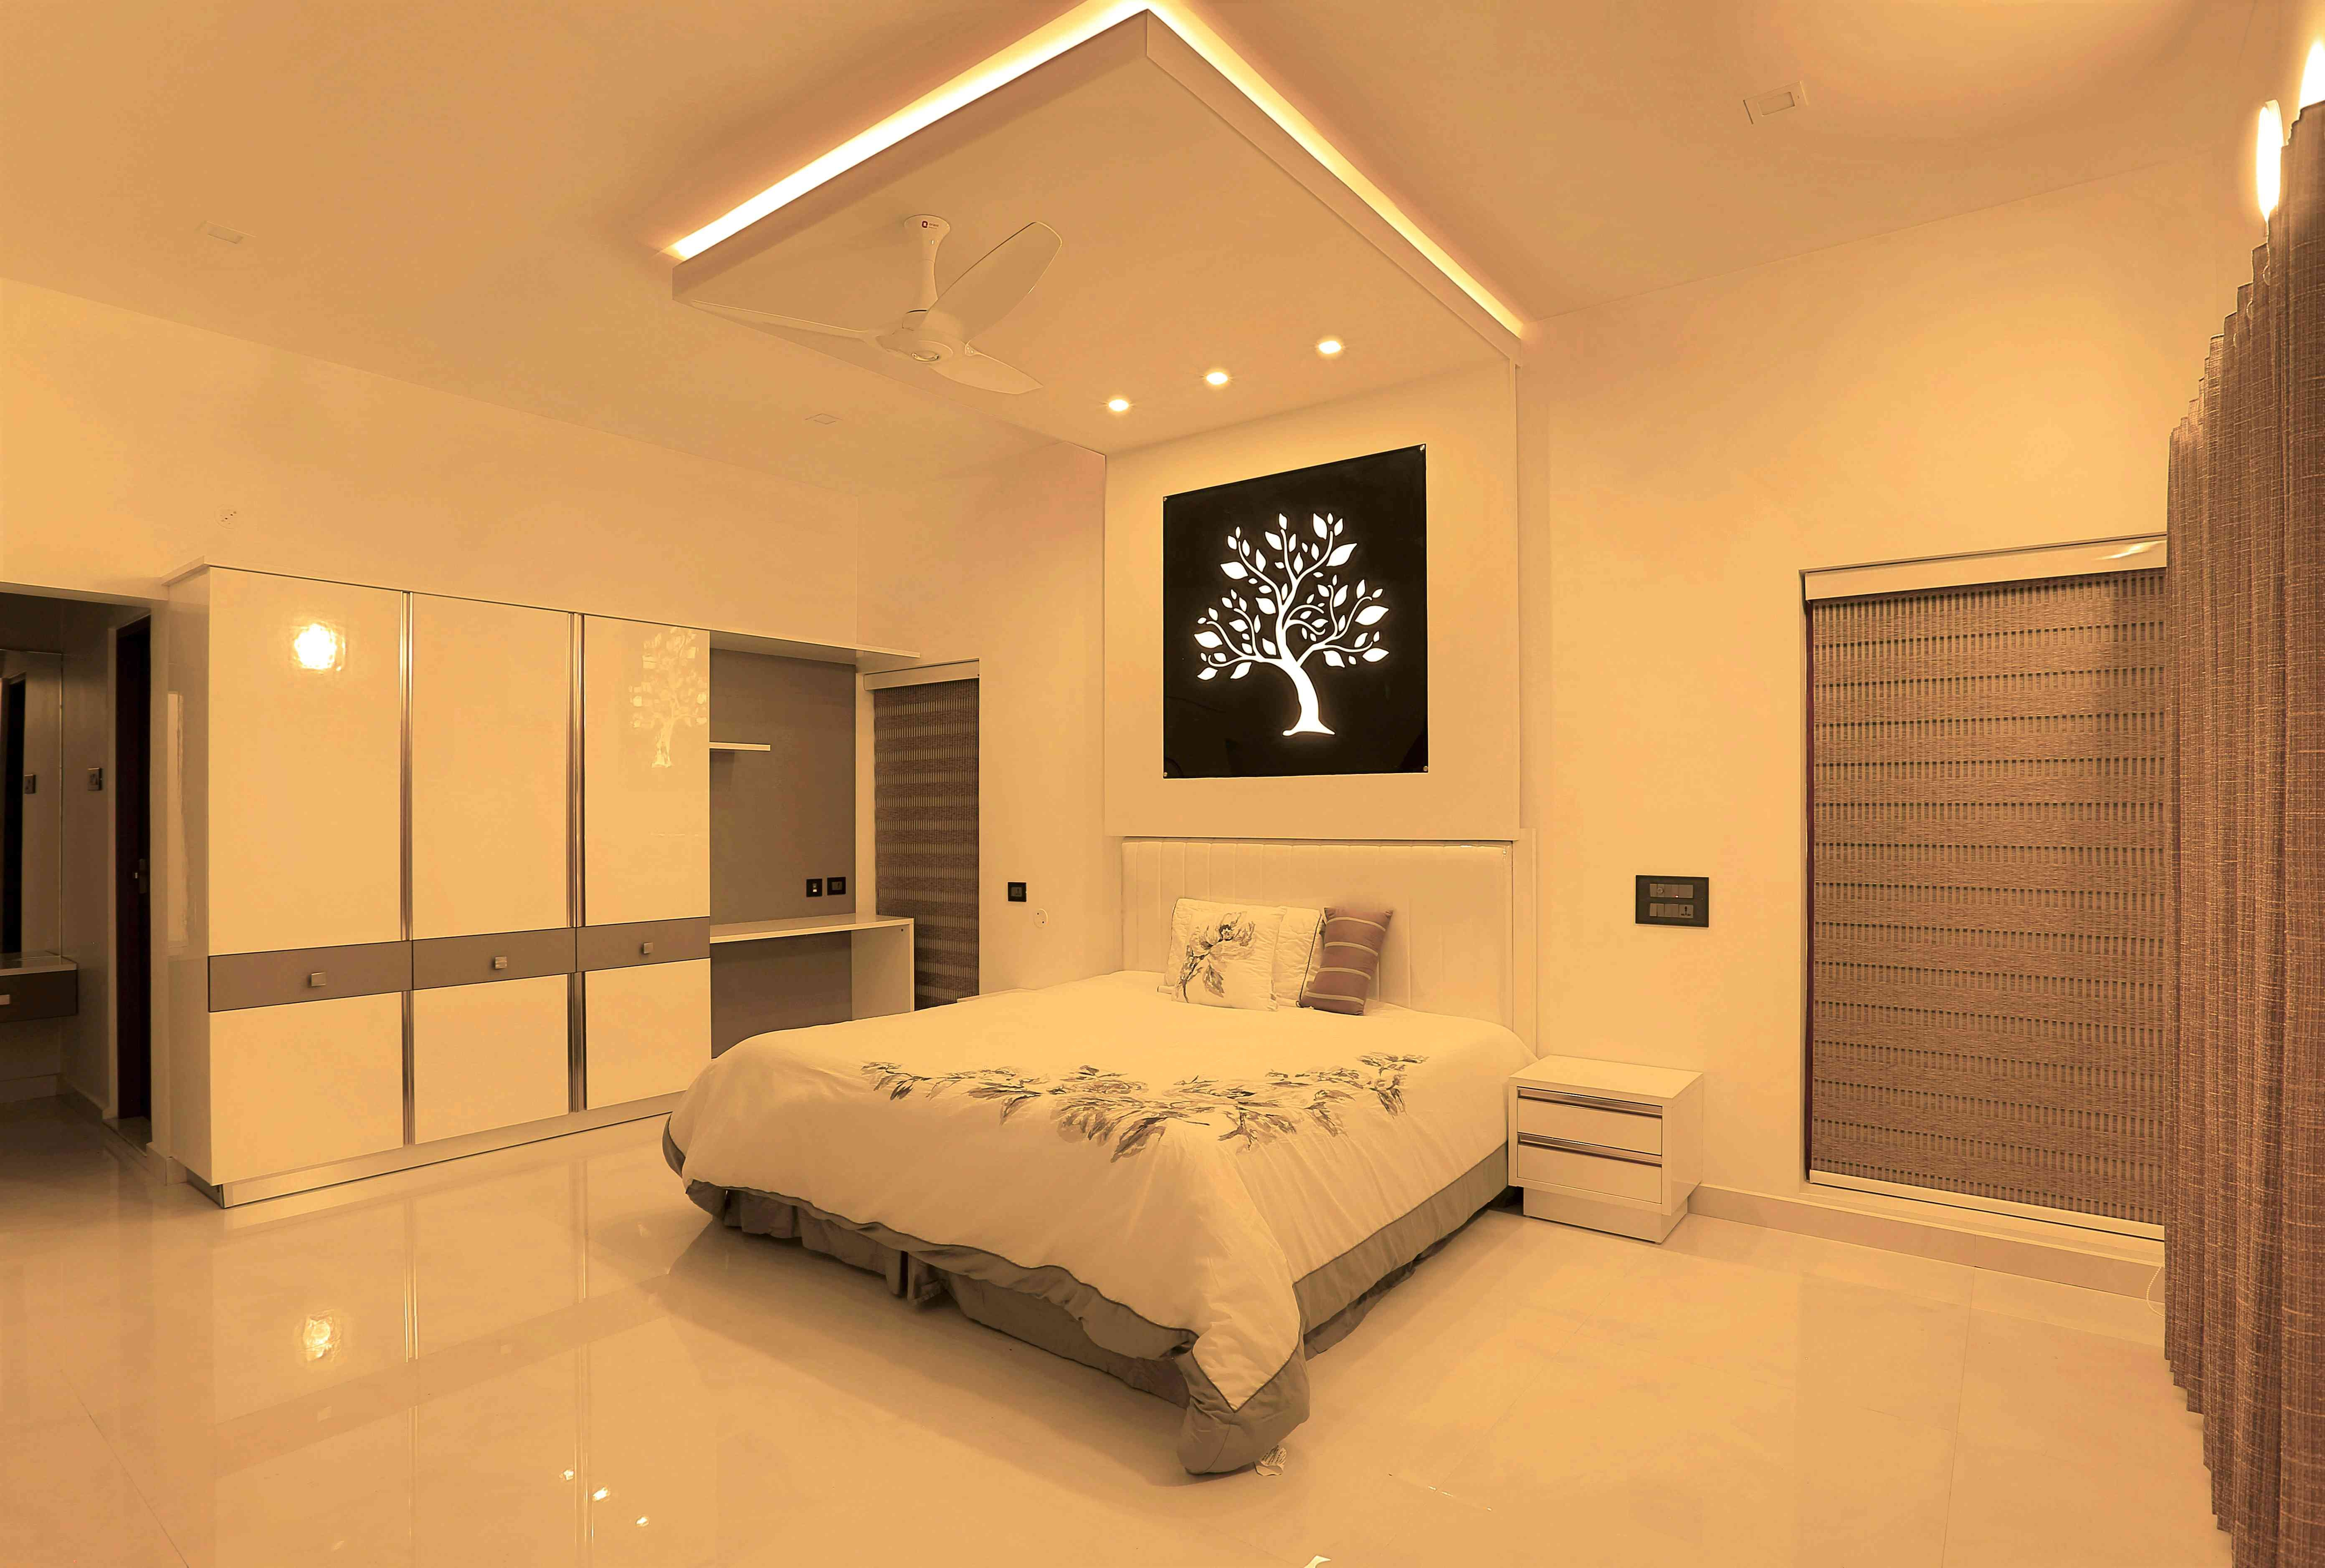 Design By Finespace Architects Ceiling Design Architect Design